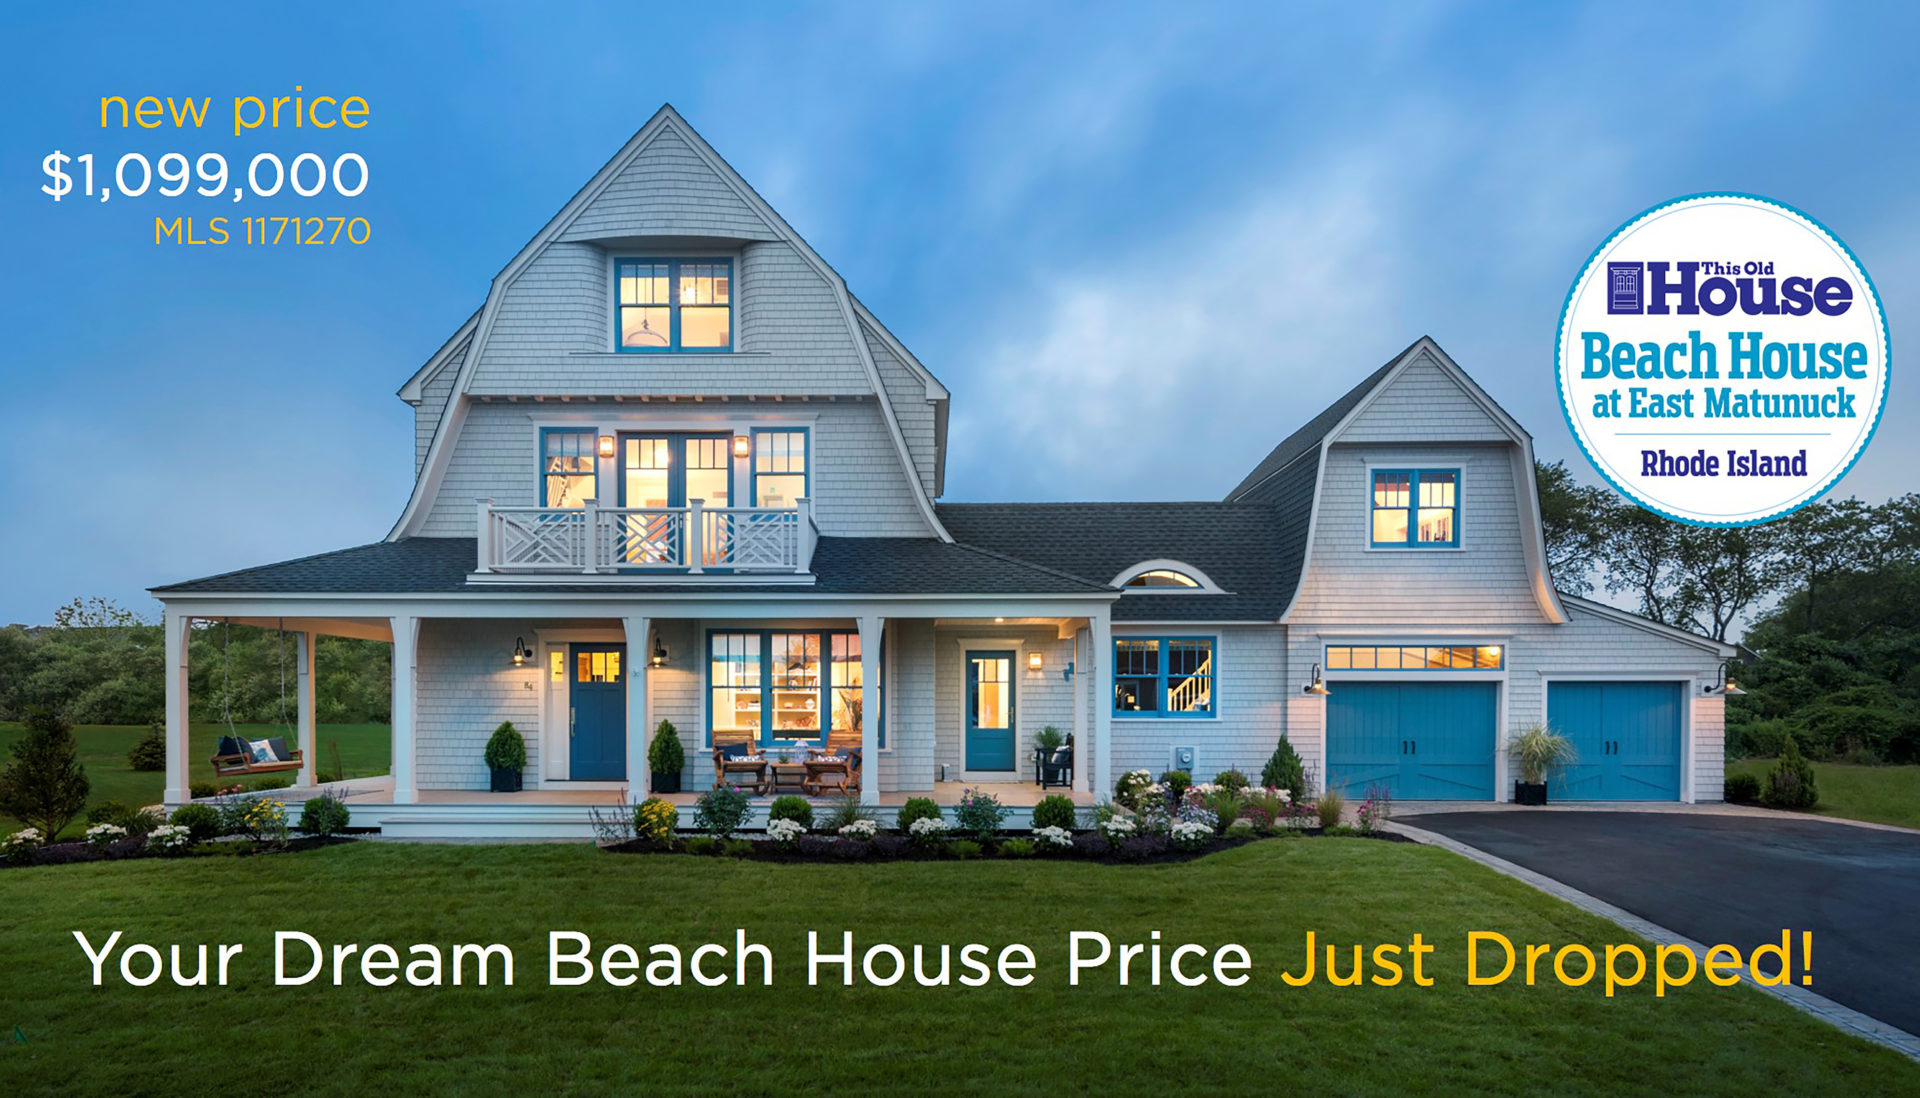 2017 This Old House 2017 Beach House Is For Sale In Rhode Island